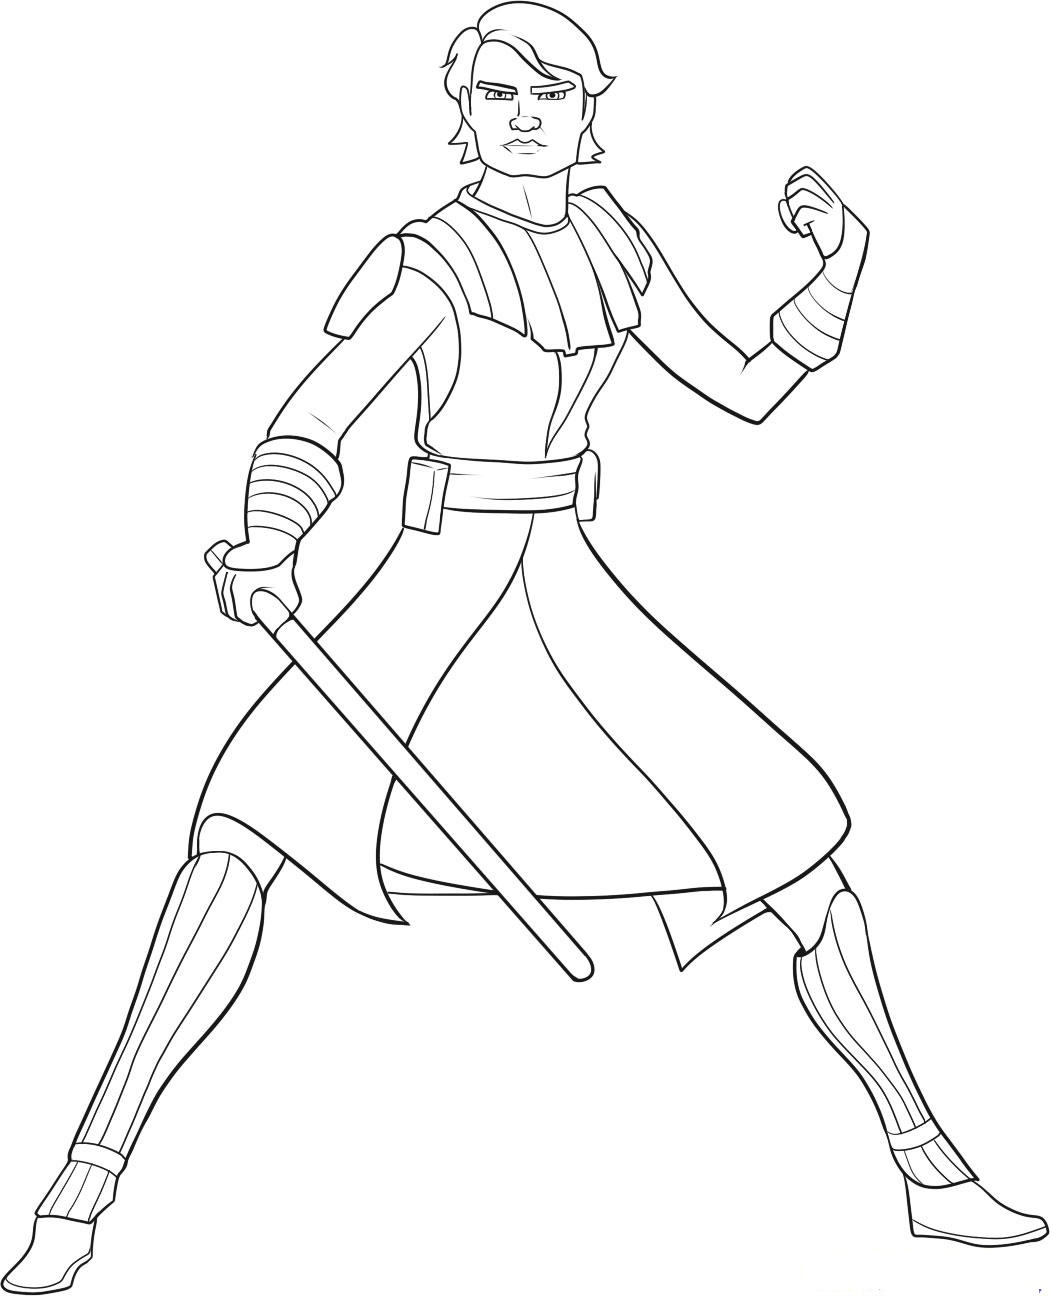 1050x1296 Star Wars Coloring Pages Anakin Skywalker For Humorous Draw Pict 3